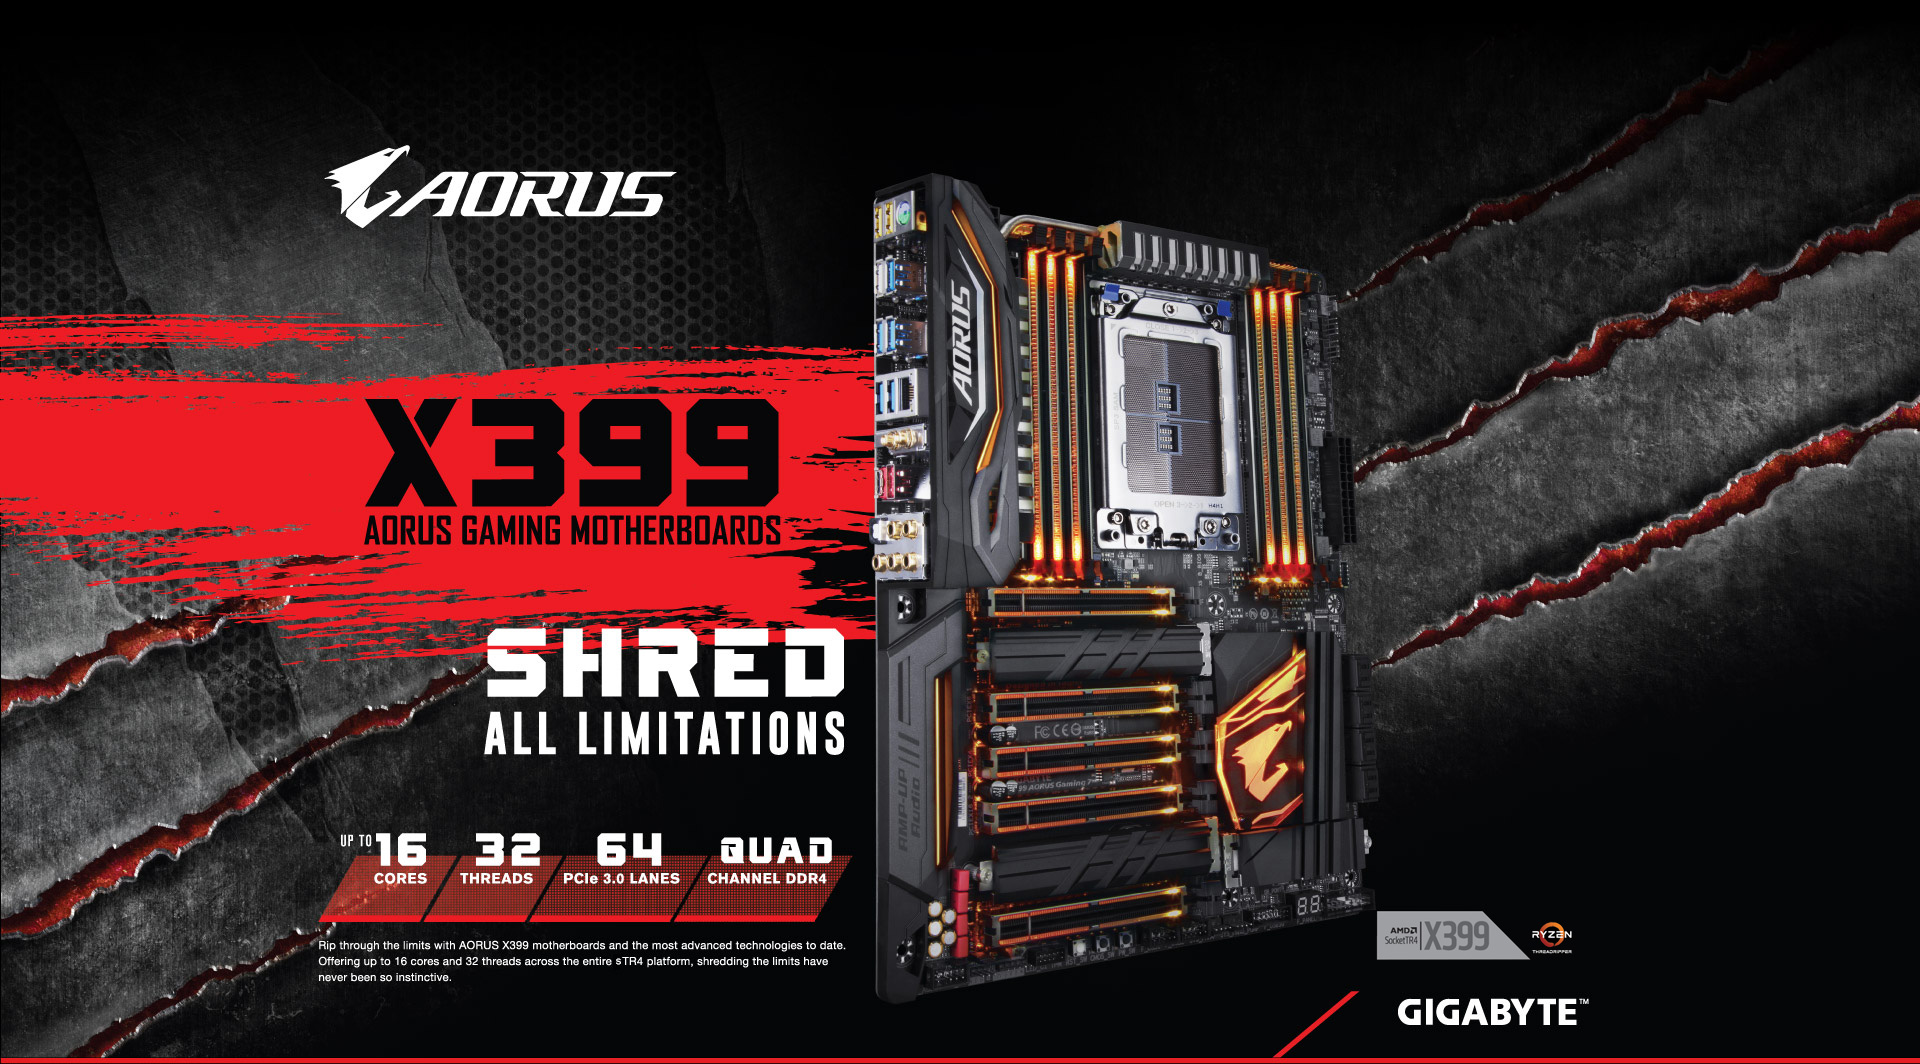 X399 Aorus Gaming 7 Rev 10 Motherboard Gigabyte Usa Diagram Besides 3 Way Dimmer Switch Wiring Together With Ultra Durable